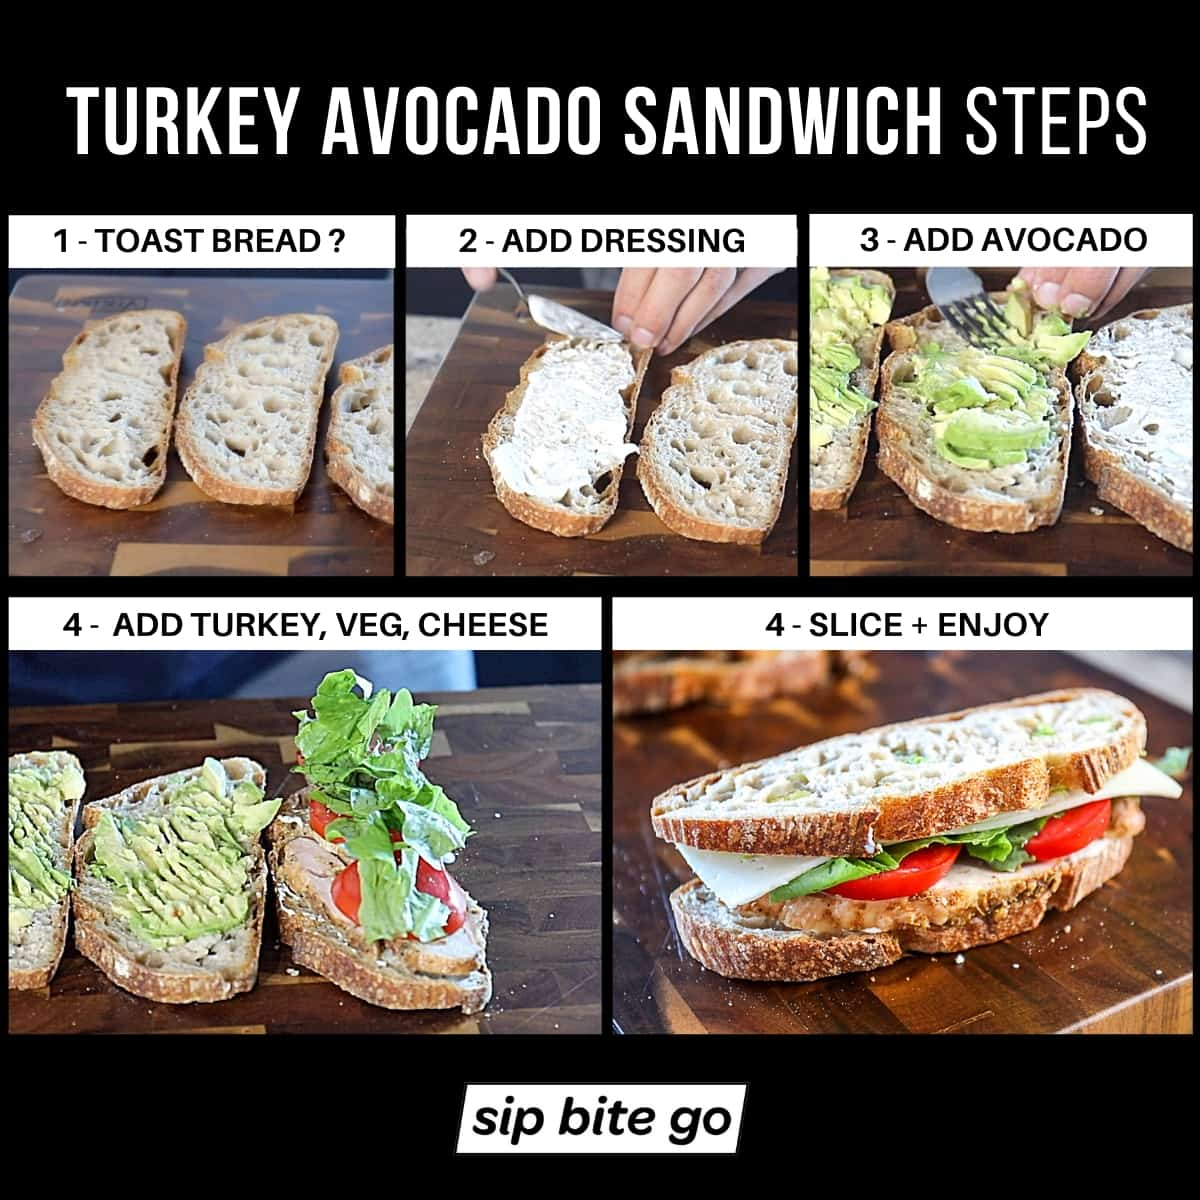 Infographic chart with recipe steps for making a turkey avocado sandwich